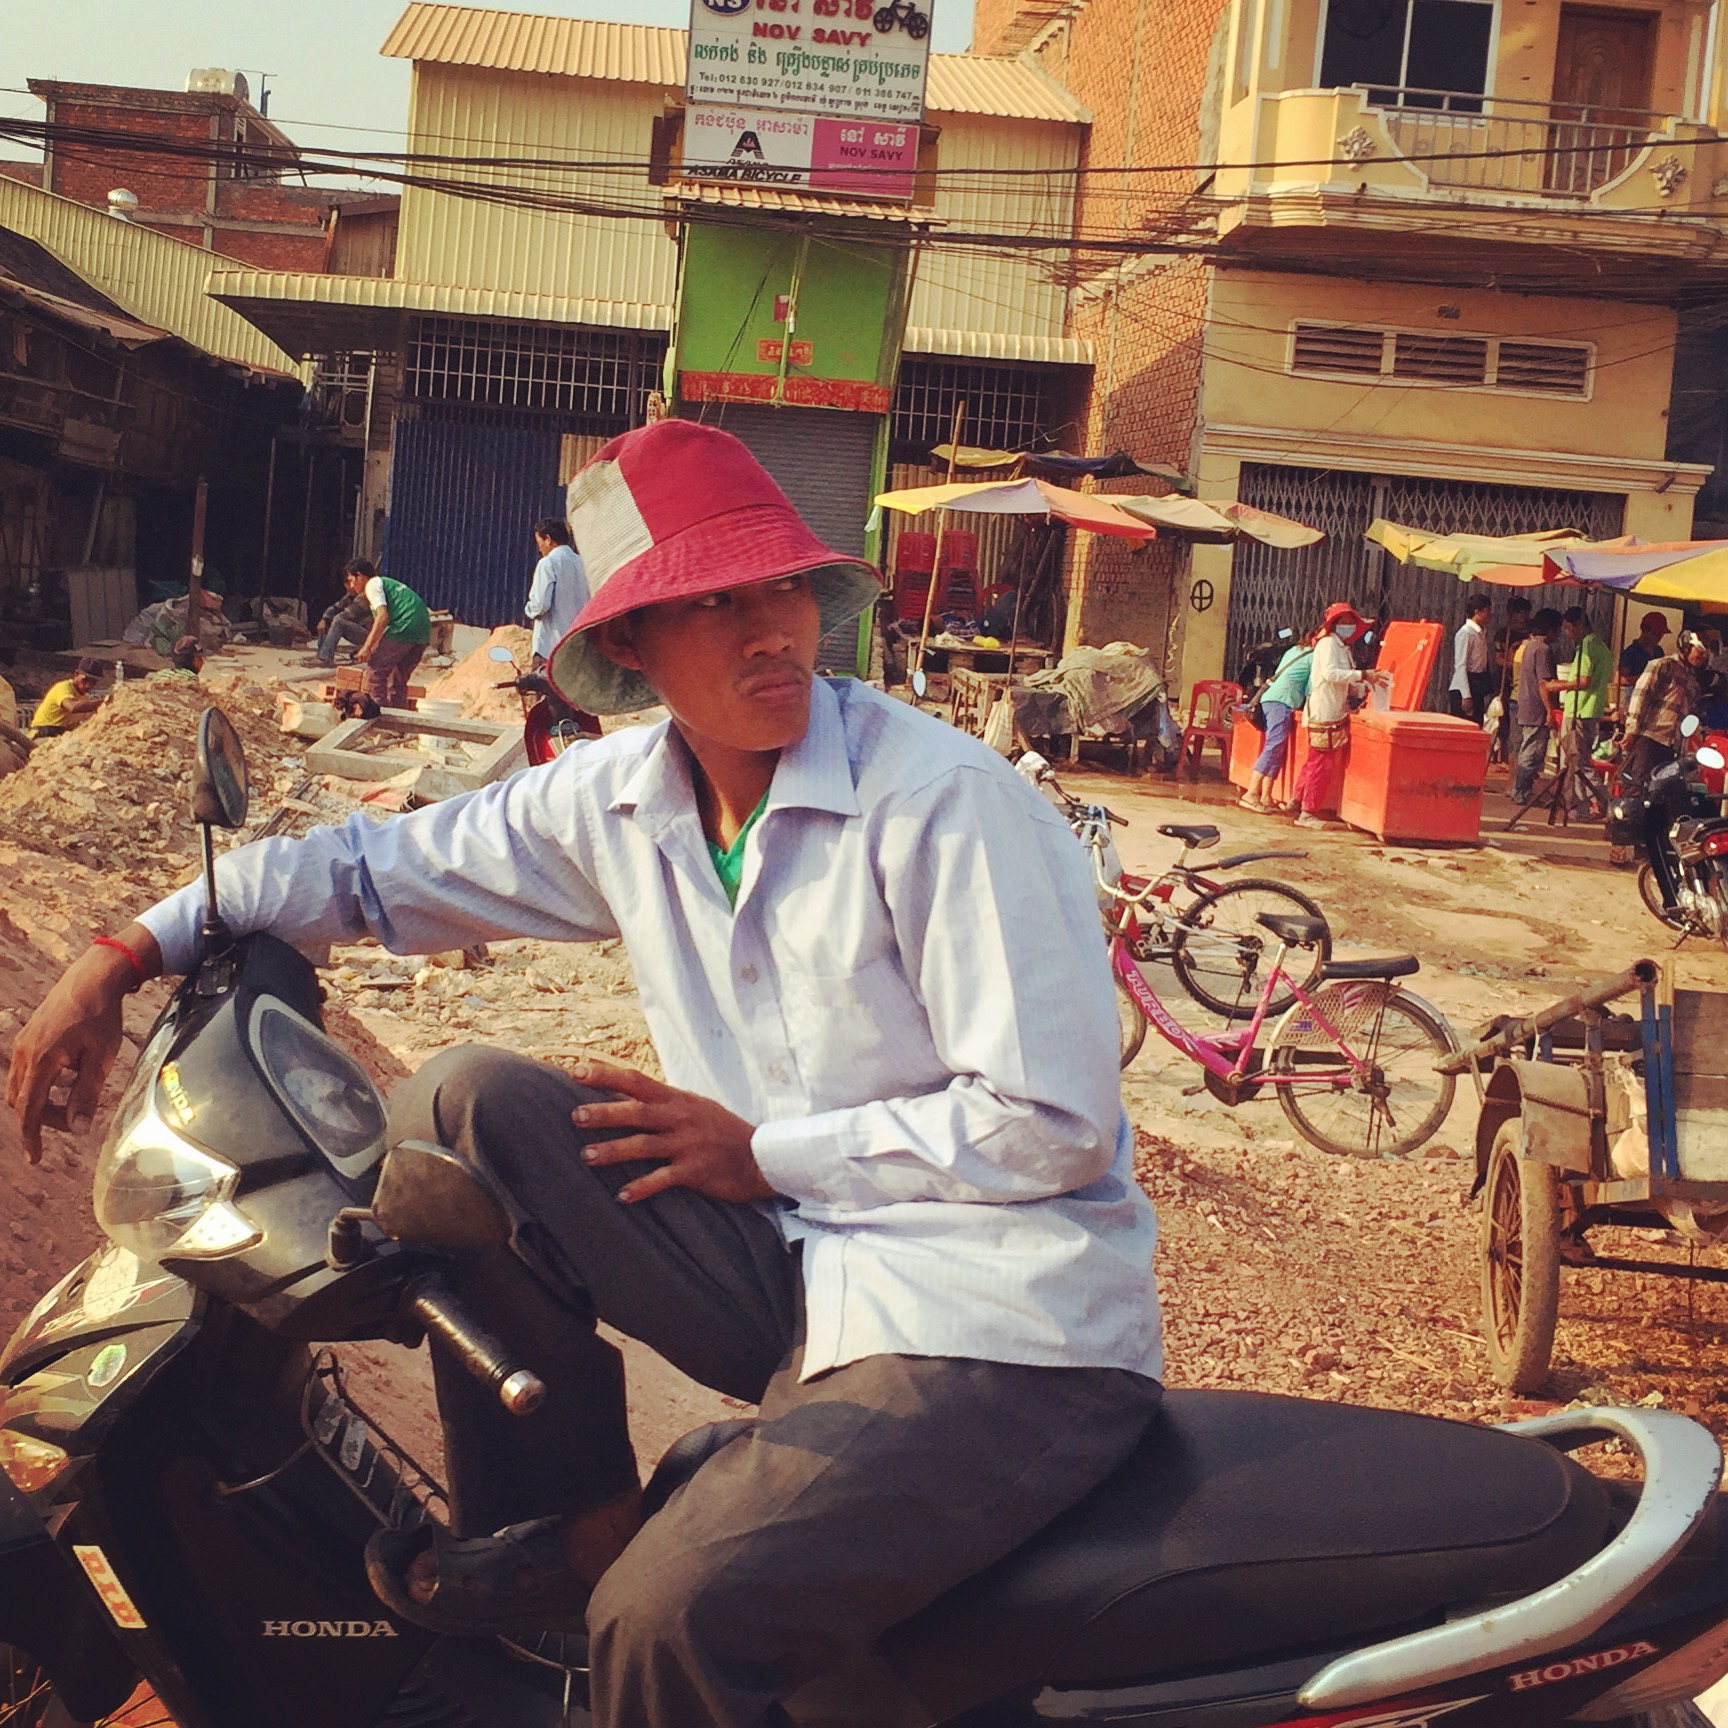 A man hanging out on his motorbike on a street in Siem Reap, Cambodia